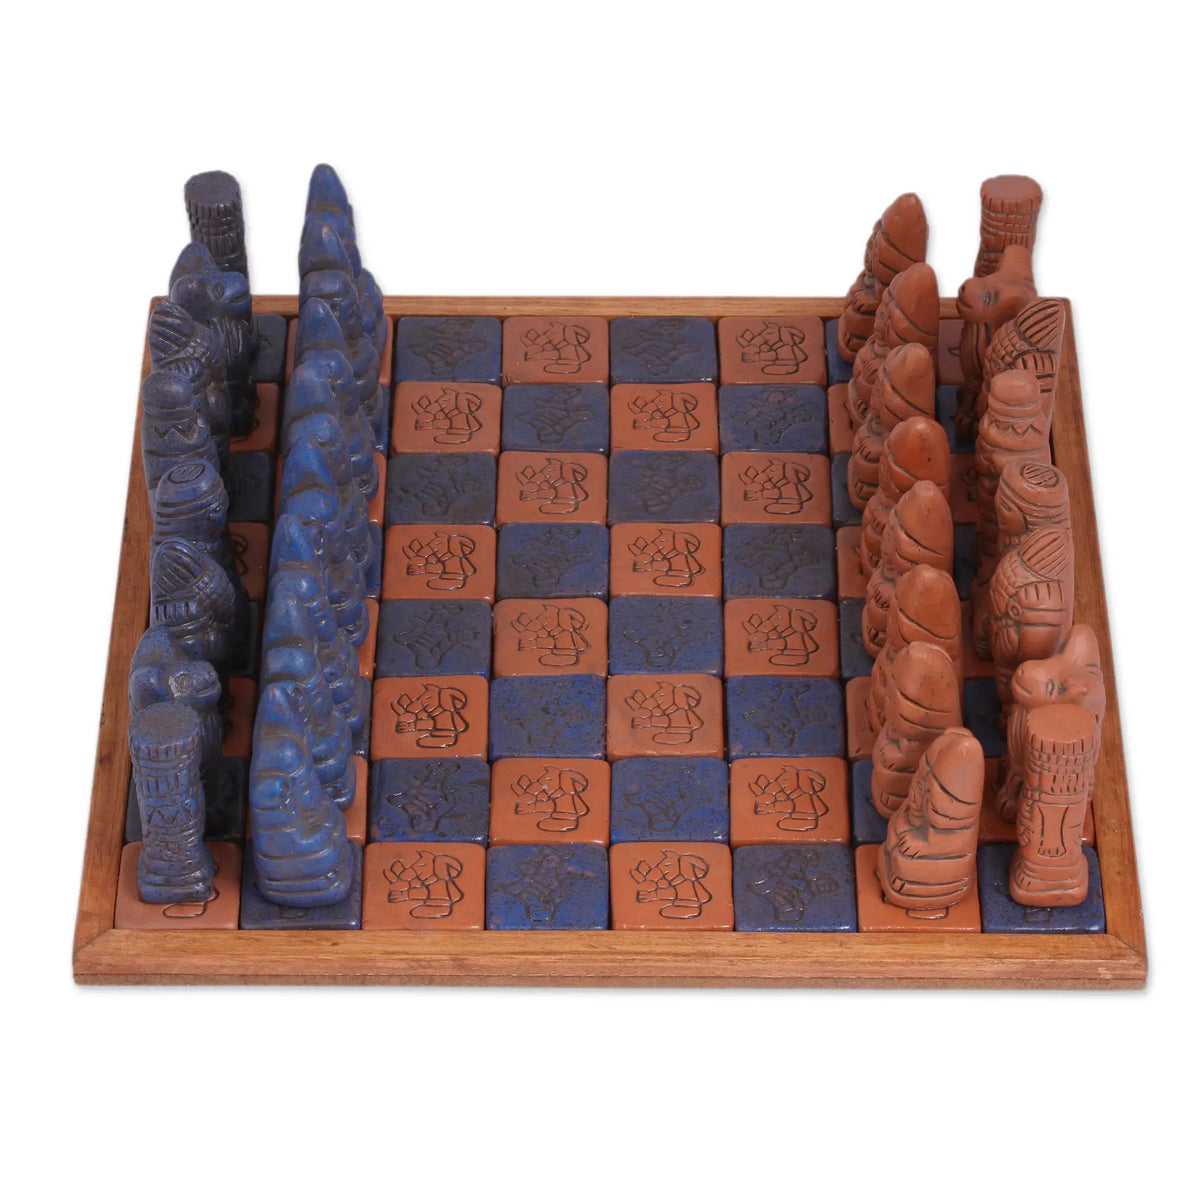 Ceramic and Wood Chess Set in Black and Brown - Hand made in Mexico